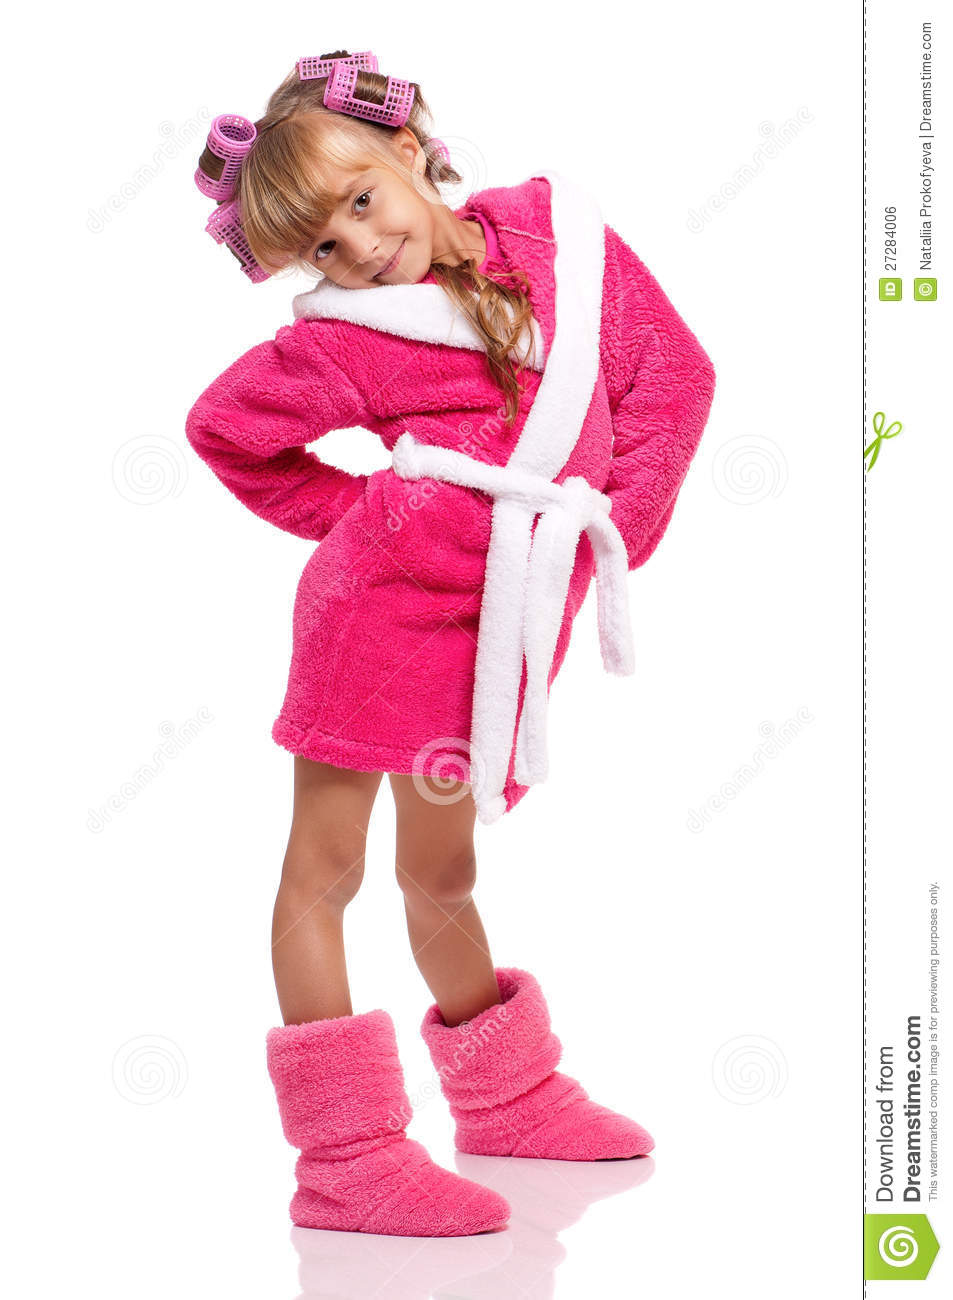 Find super-soft robes and kids' pajamas and keep them cozy and warm. Skip Navigation. Pajamas & Nightgowns. Getting a good night's sleep means being comfortable all night long. With soft and plush pajamas, kids get cozy in their beds and drift off to sleep. Nightgowns are the perfect addition to any little girl's nighttime wardrobe.